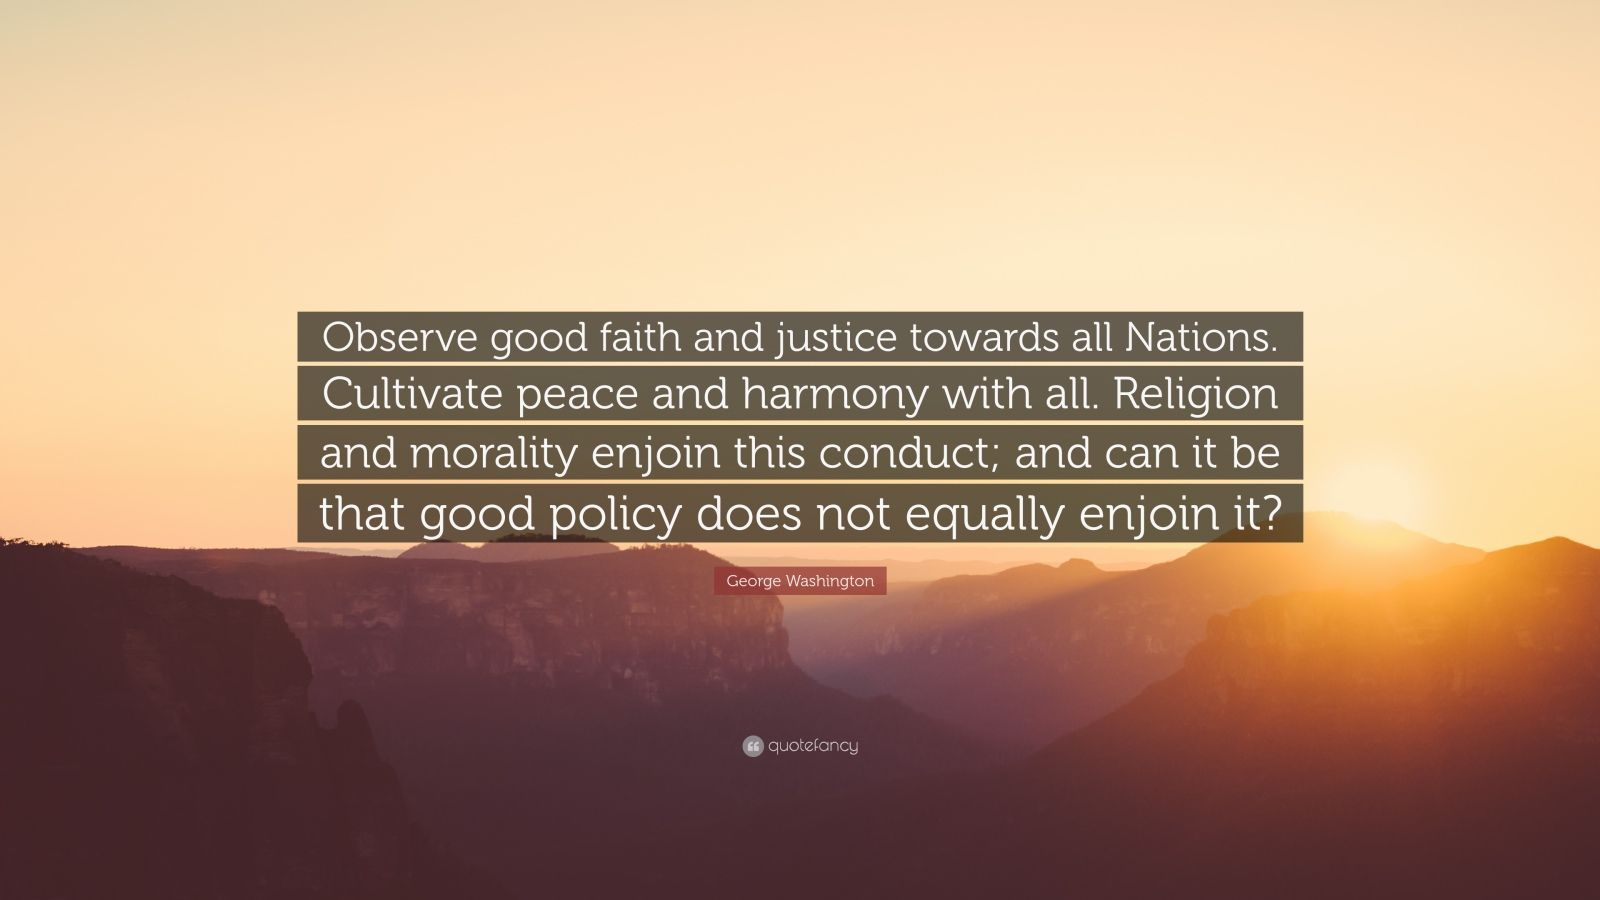 "George Washington Quote: ""Observe good faith and justice towards all Nations. Cultivate peace and harmony with all. Religion and morality enjoin this conduct; and can it be that good policy does not equally enjoin it?"""